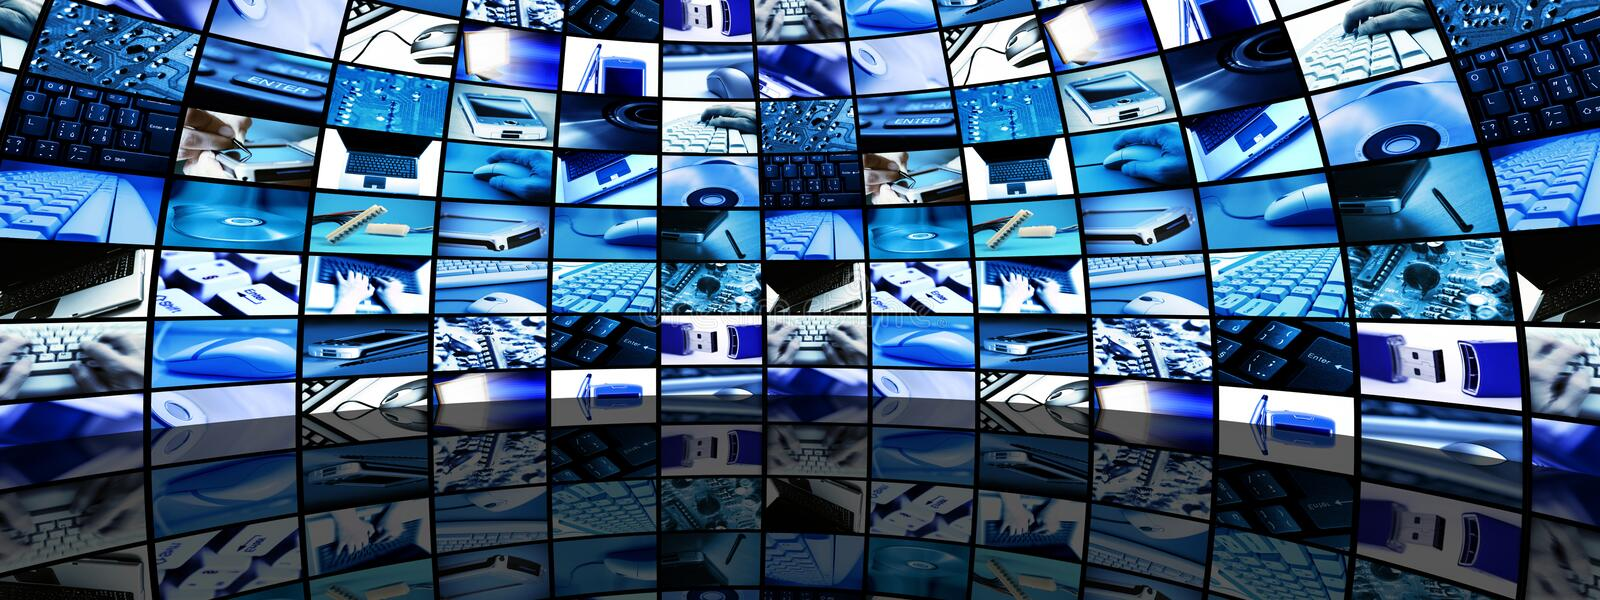 Download Technology Room Stock Images - Image: 5408324